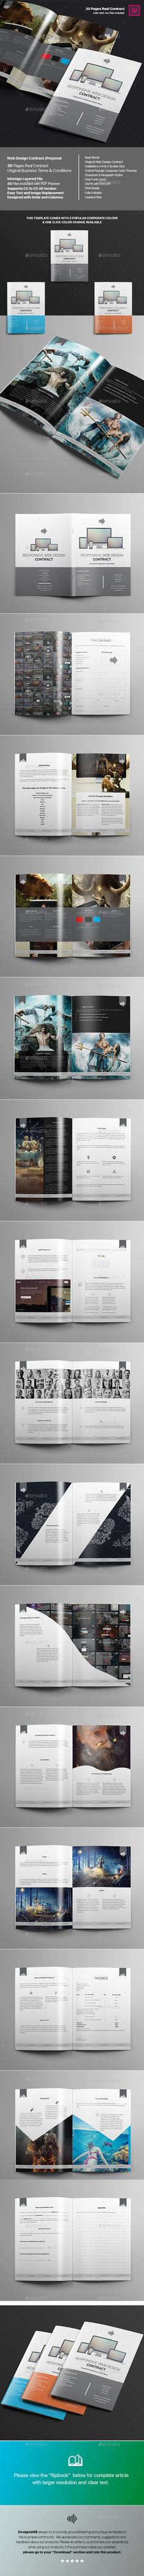 proposal template for word%0A Black Multipurpose InDesign Proposal Templates   More Proposal templates  and Proposals ideas